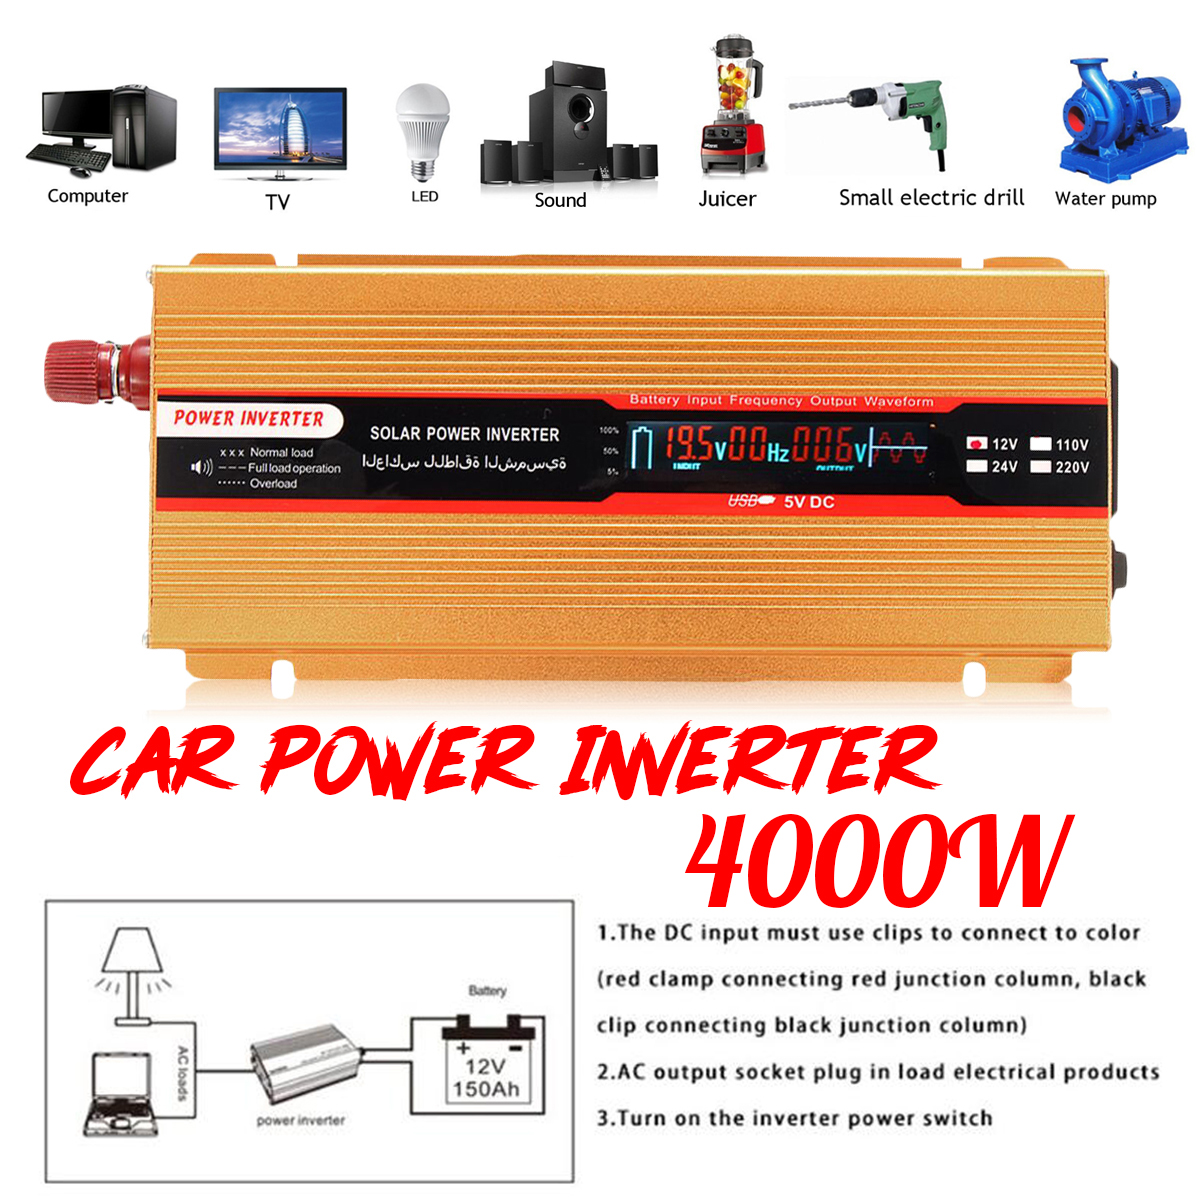 12/24V To AC 220/110V USB Modified Sine Wave Converter PEAK 4000W Car Power Inverter Voltage Transformer for Various Appliances peak 4000w 12 24v to ac 220 110v car power inverter usb modified sine wave converter voltage transformer for various appliances